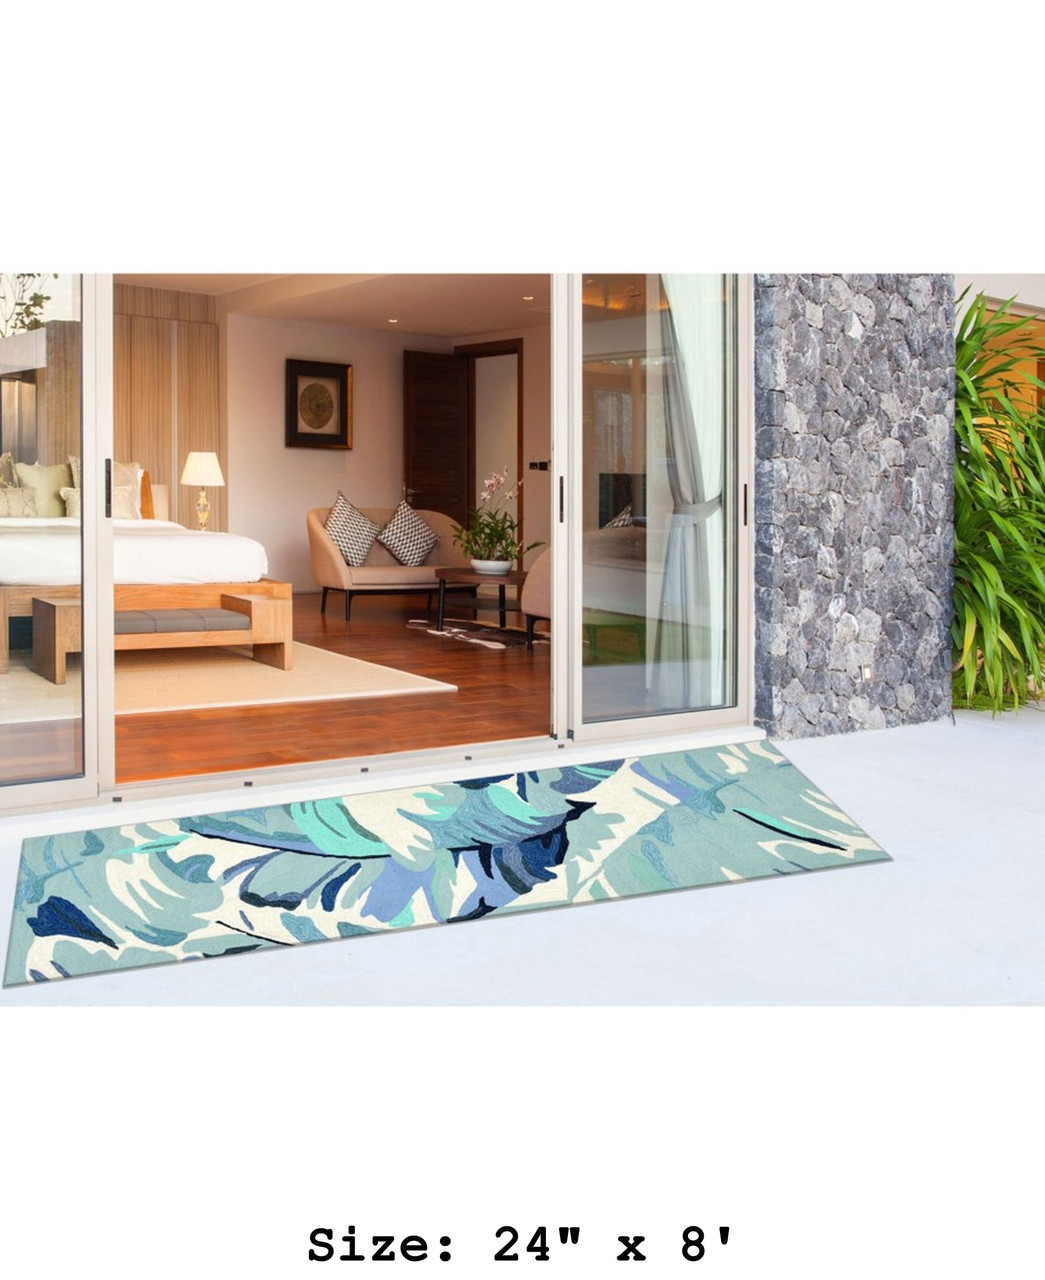 Blue Capri Palm Leaf Indoor/Outdoor Rug - Runner Lifestyle